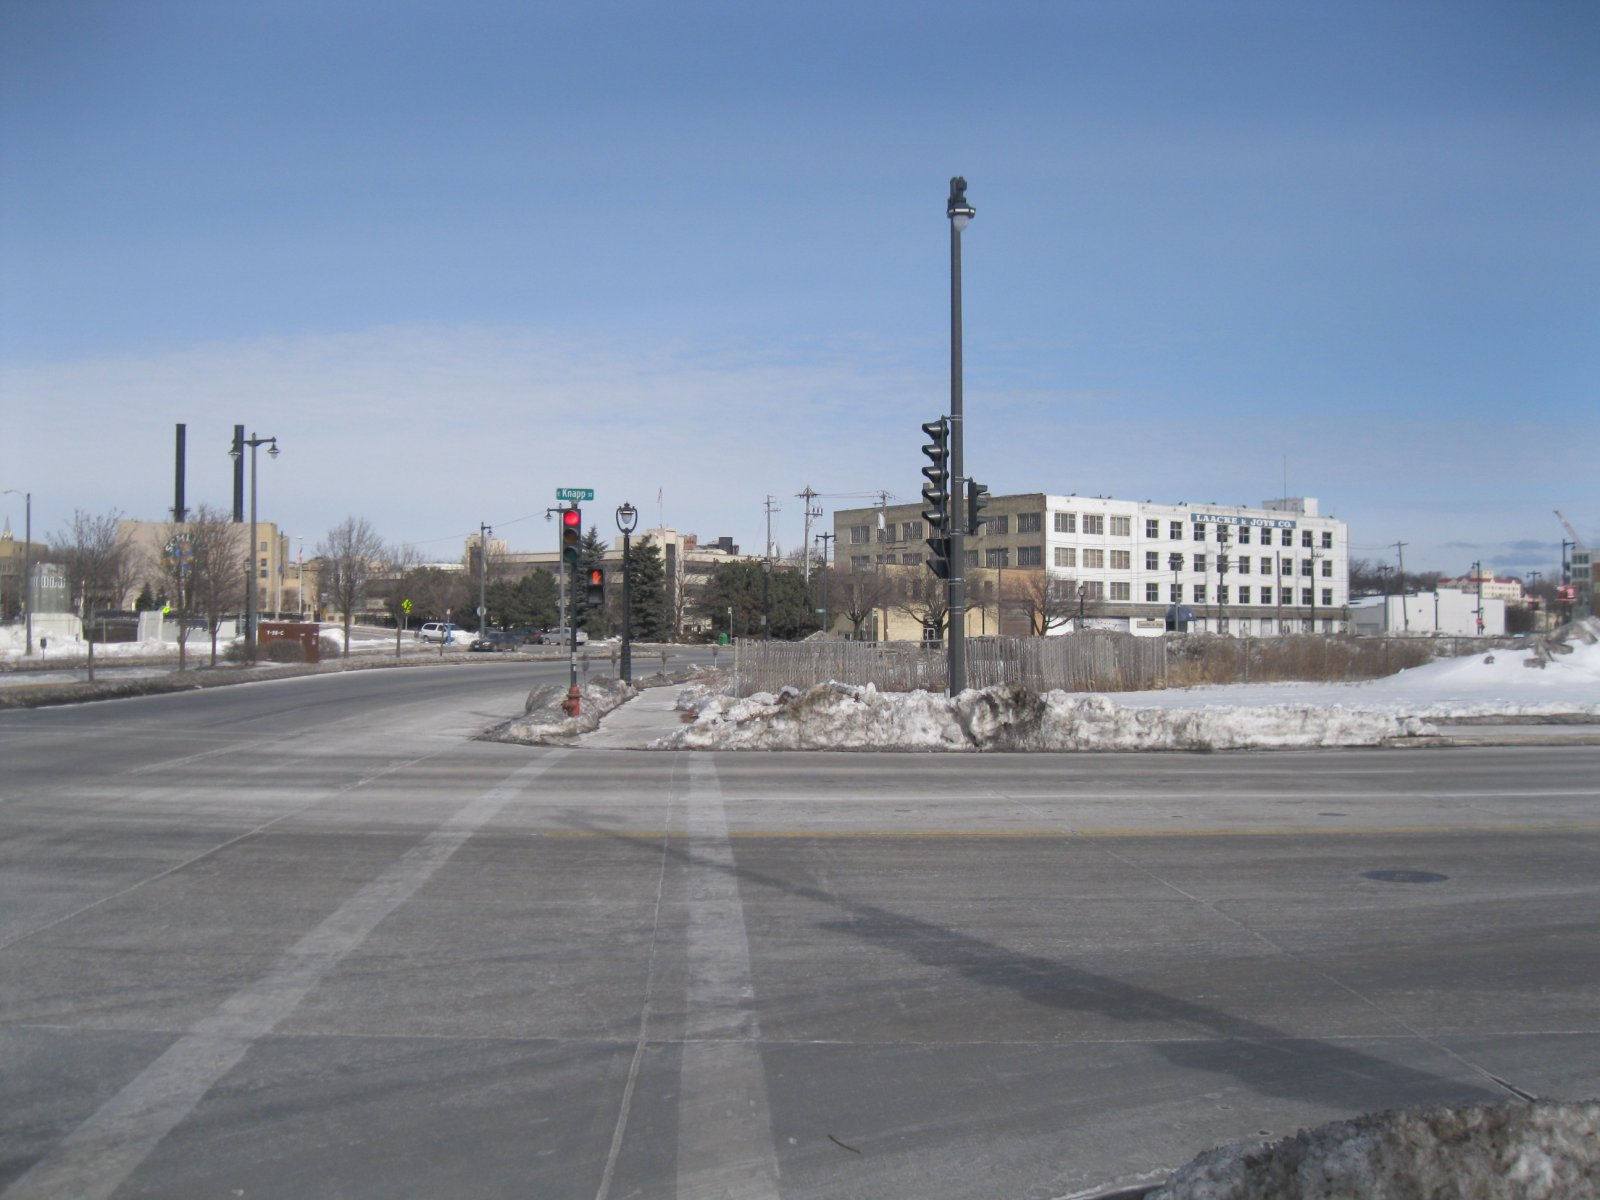 Intersection of N. Water and E. Knapp streets - looking north.